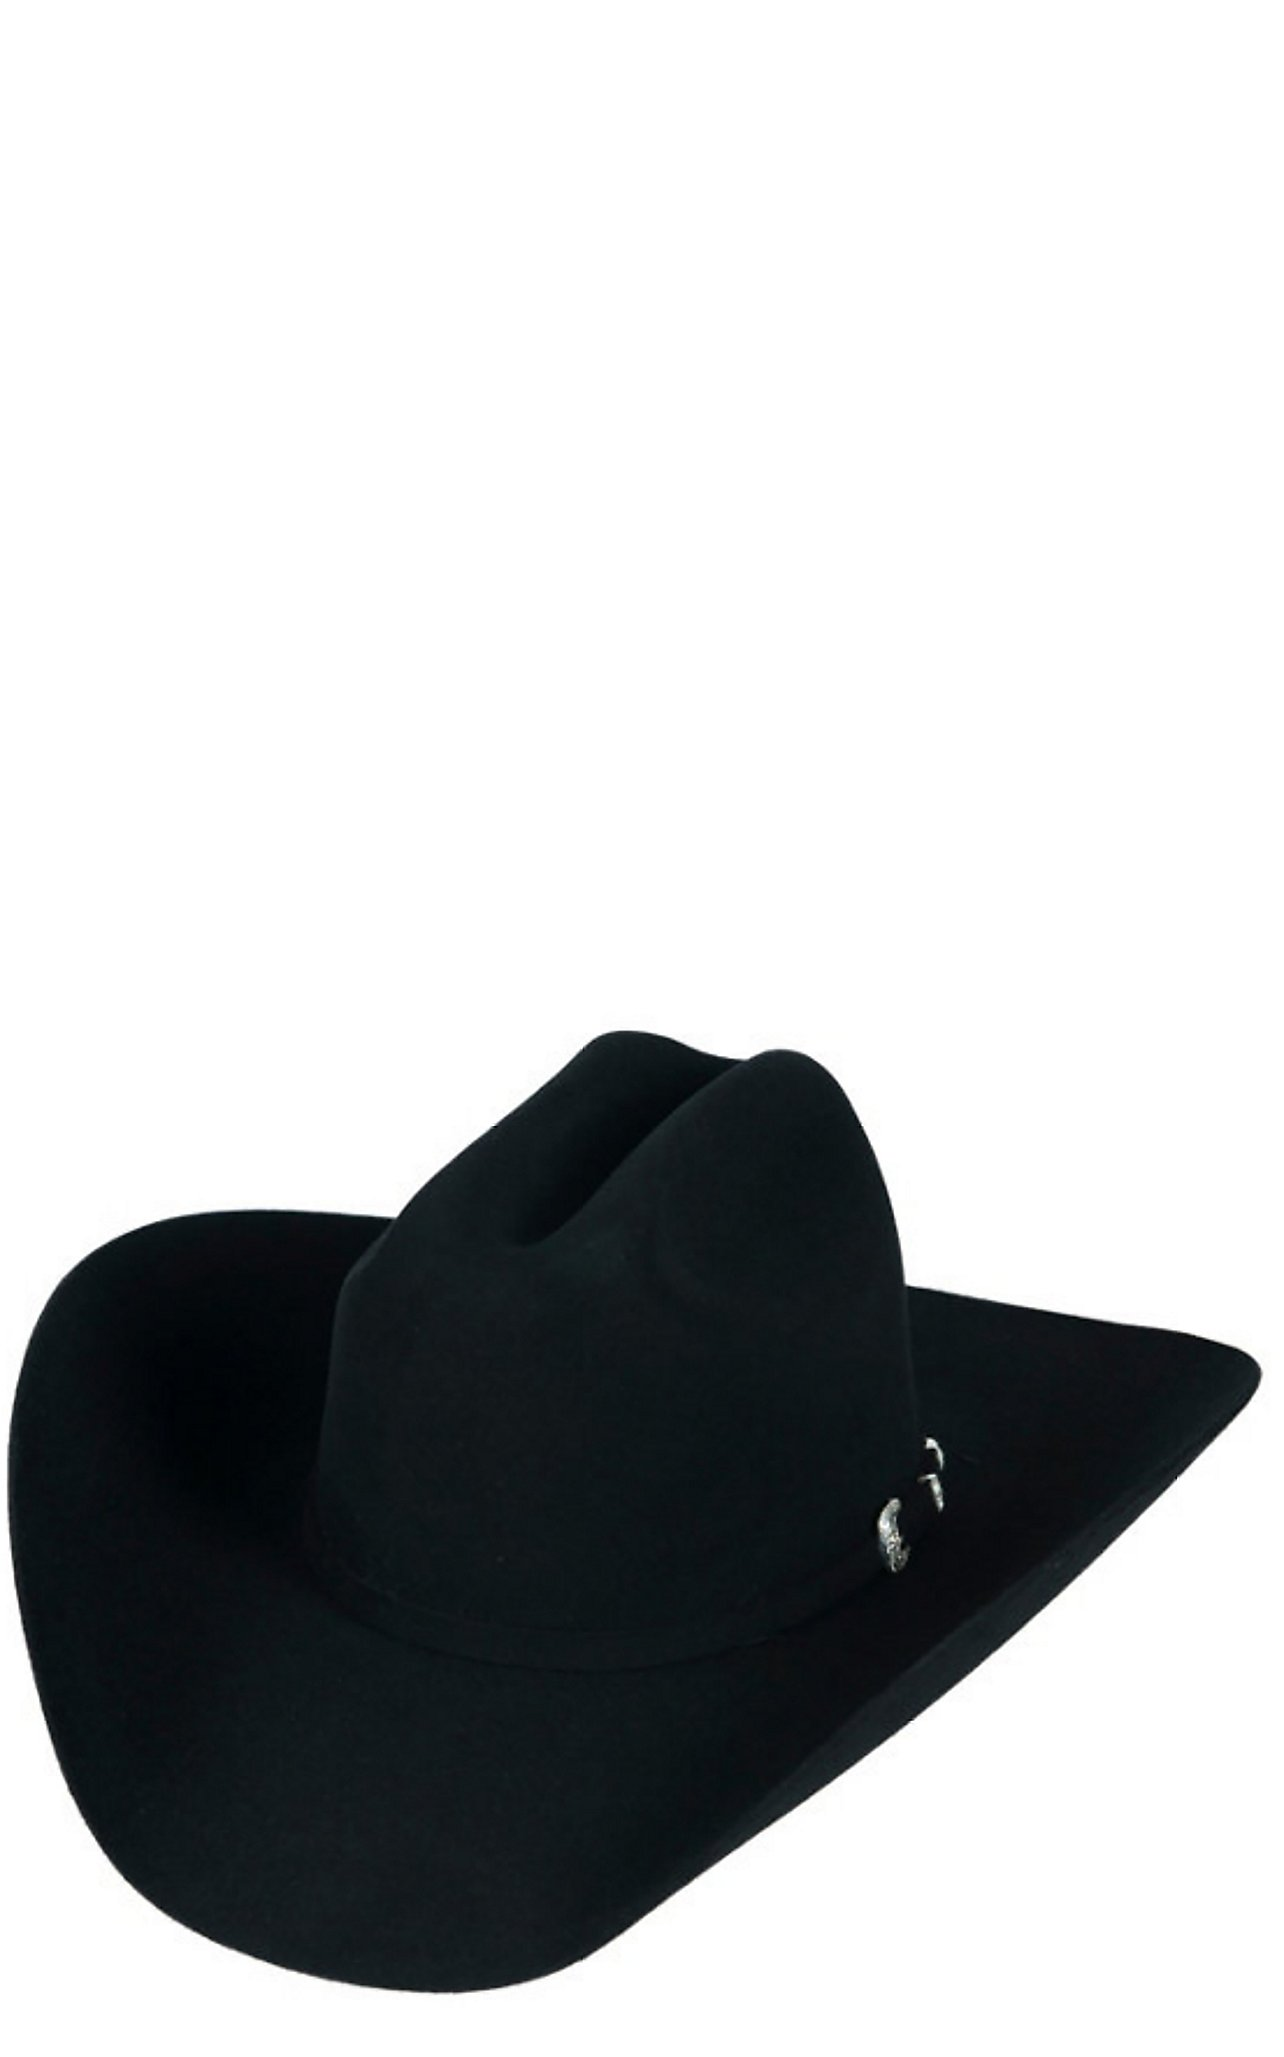 Resistol 20X Black Gold Low Crown Black Felt Cowboy Hat  1f5d4ffbcf5